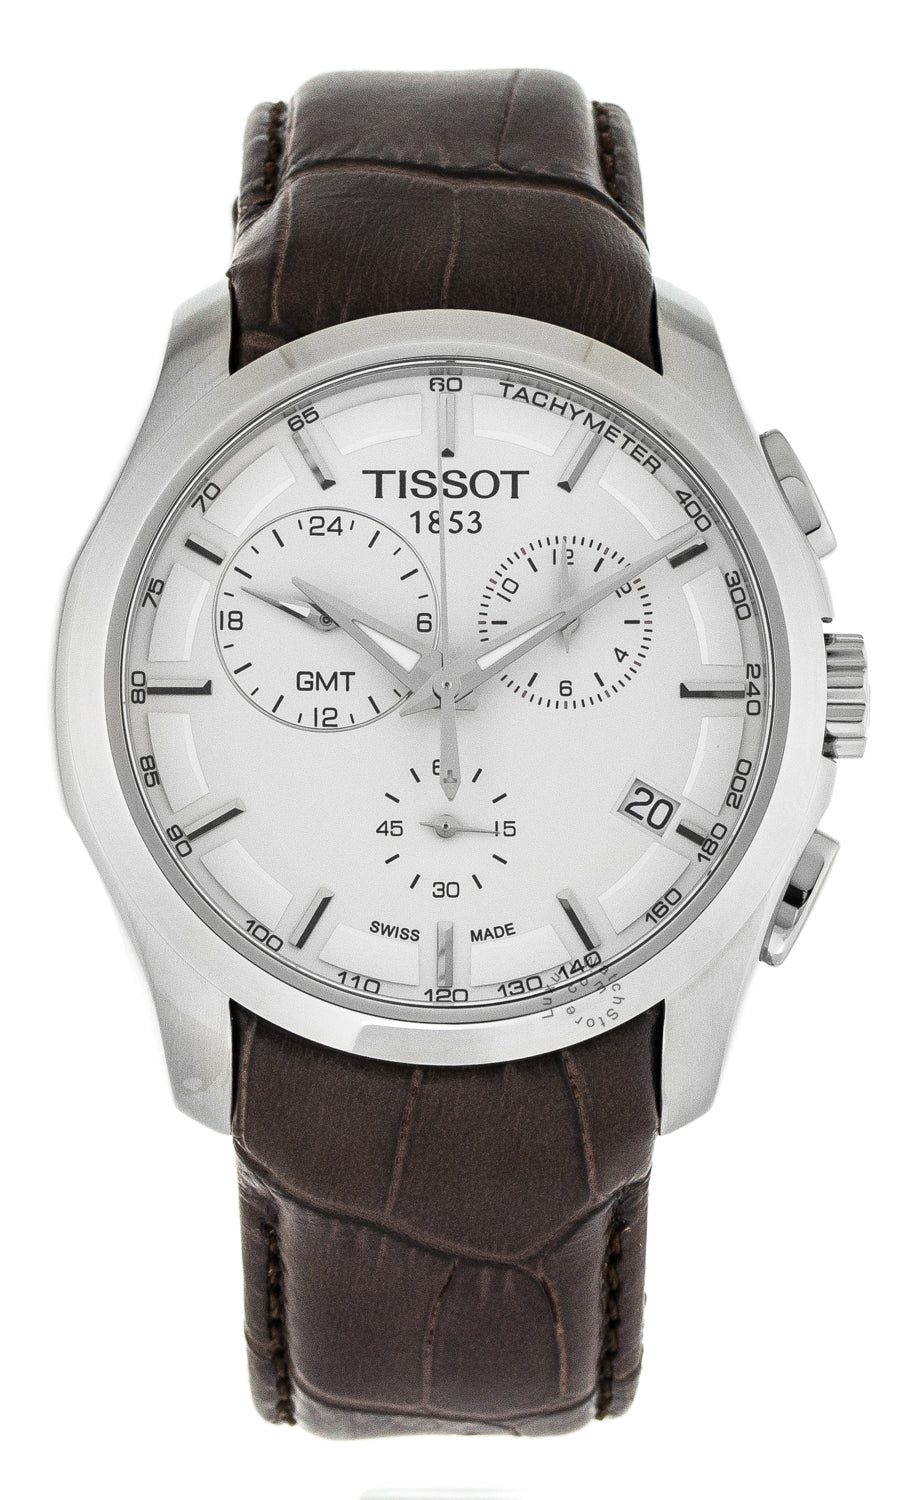 Tissot Couturier GMT Chronograph White Dial Men Watch T0354391603100